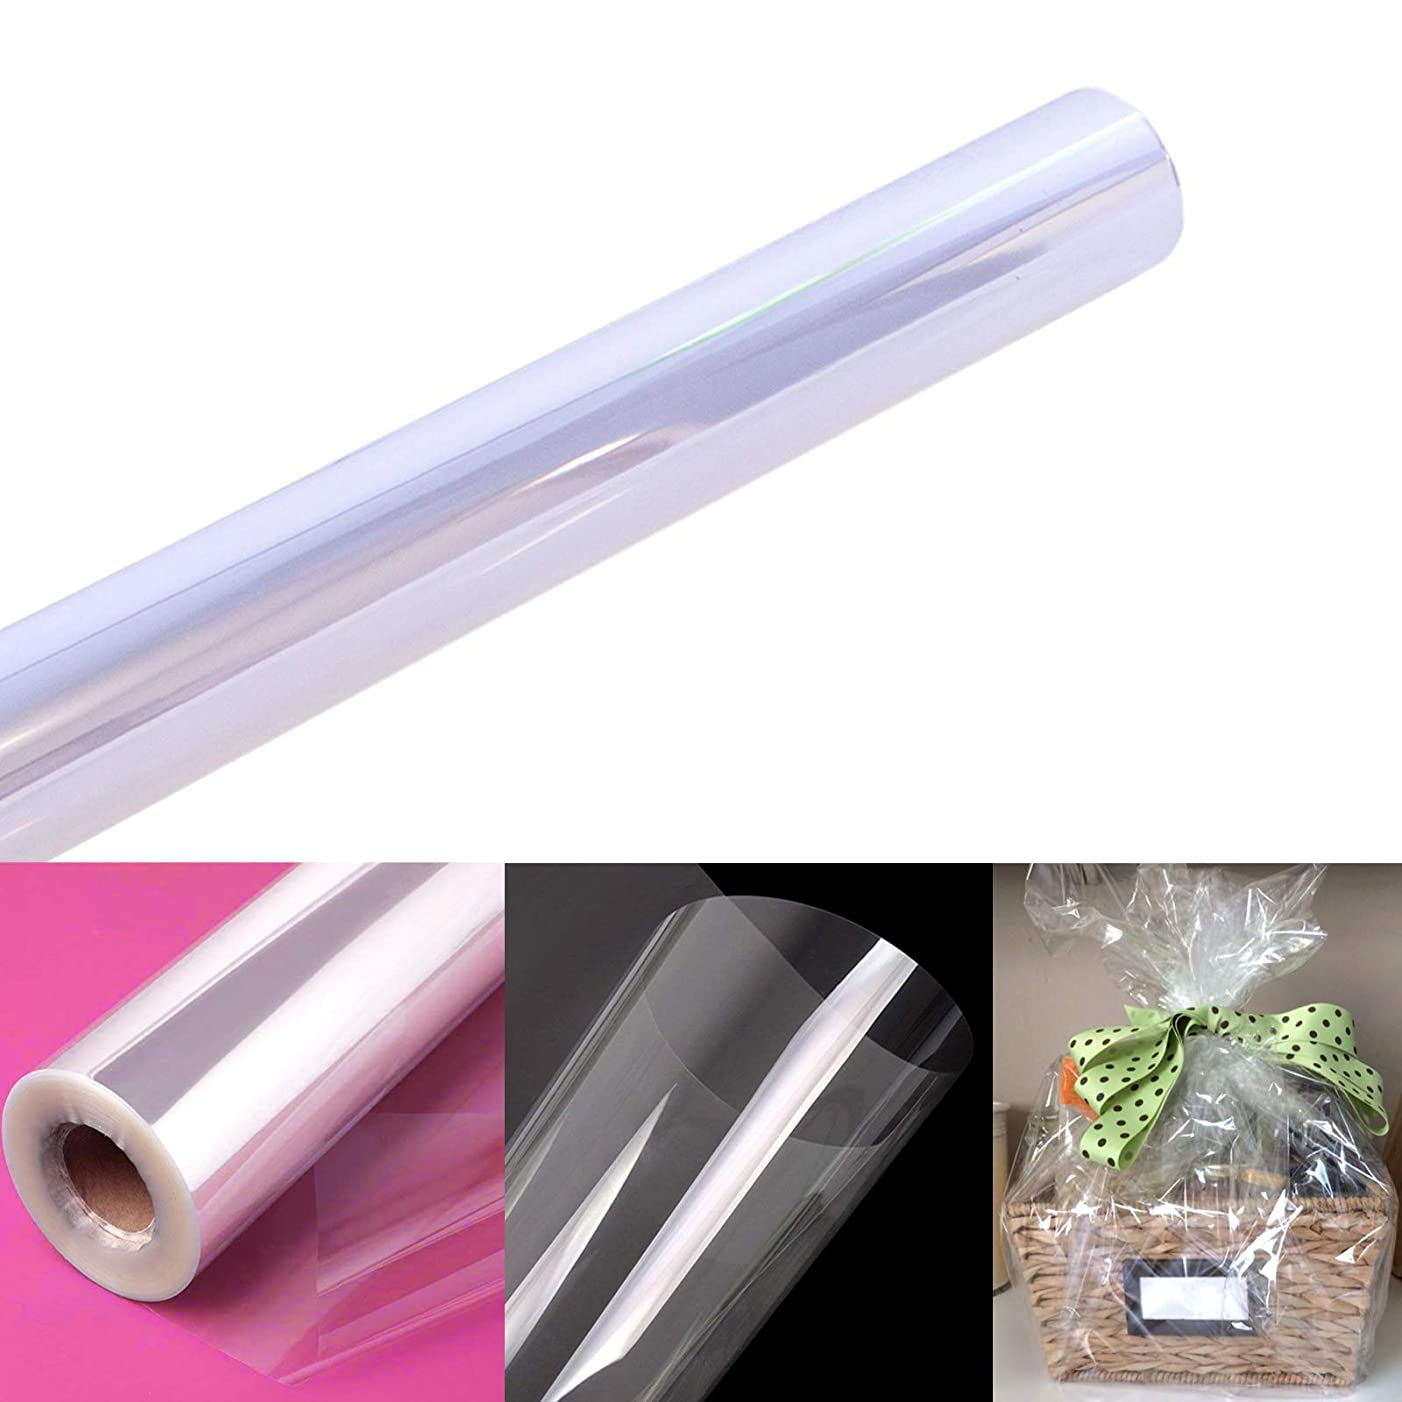 """Clear Cellophane Wrap Roll   100' Ft. Long X 31.5"""" in. Wide   2.3 Mil Thick Crystal Clear   Gifts, Baskets, Arts & Crafts, Treats, Wrapping   Meets FDA Specifications   by Anapoliz"""